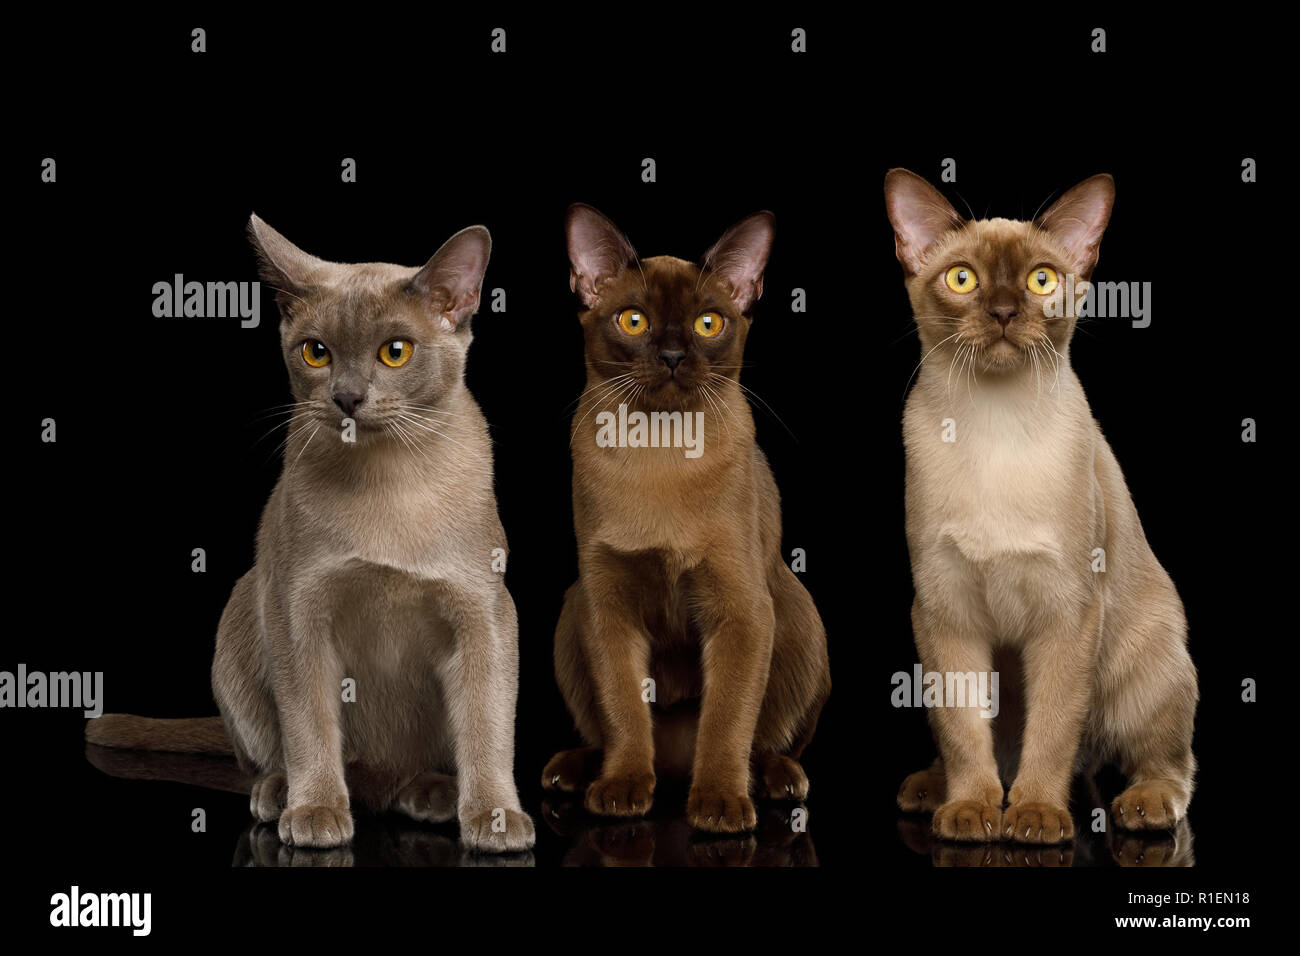 Three Burma Cats Sitting and Looking in Camera, isolated on black background, front view - Stock Image